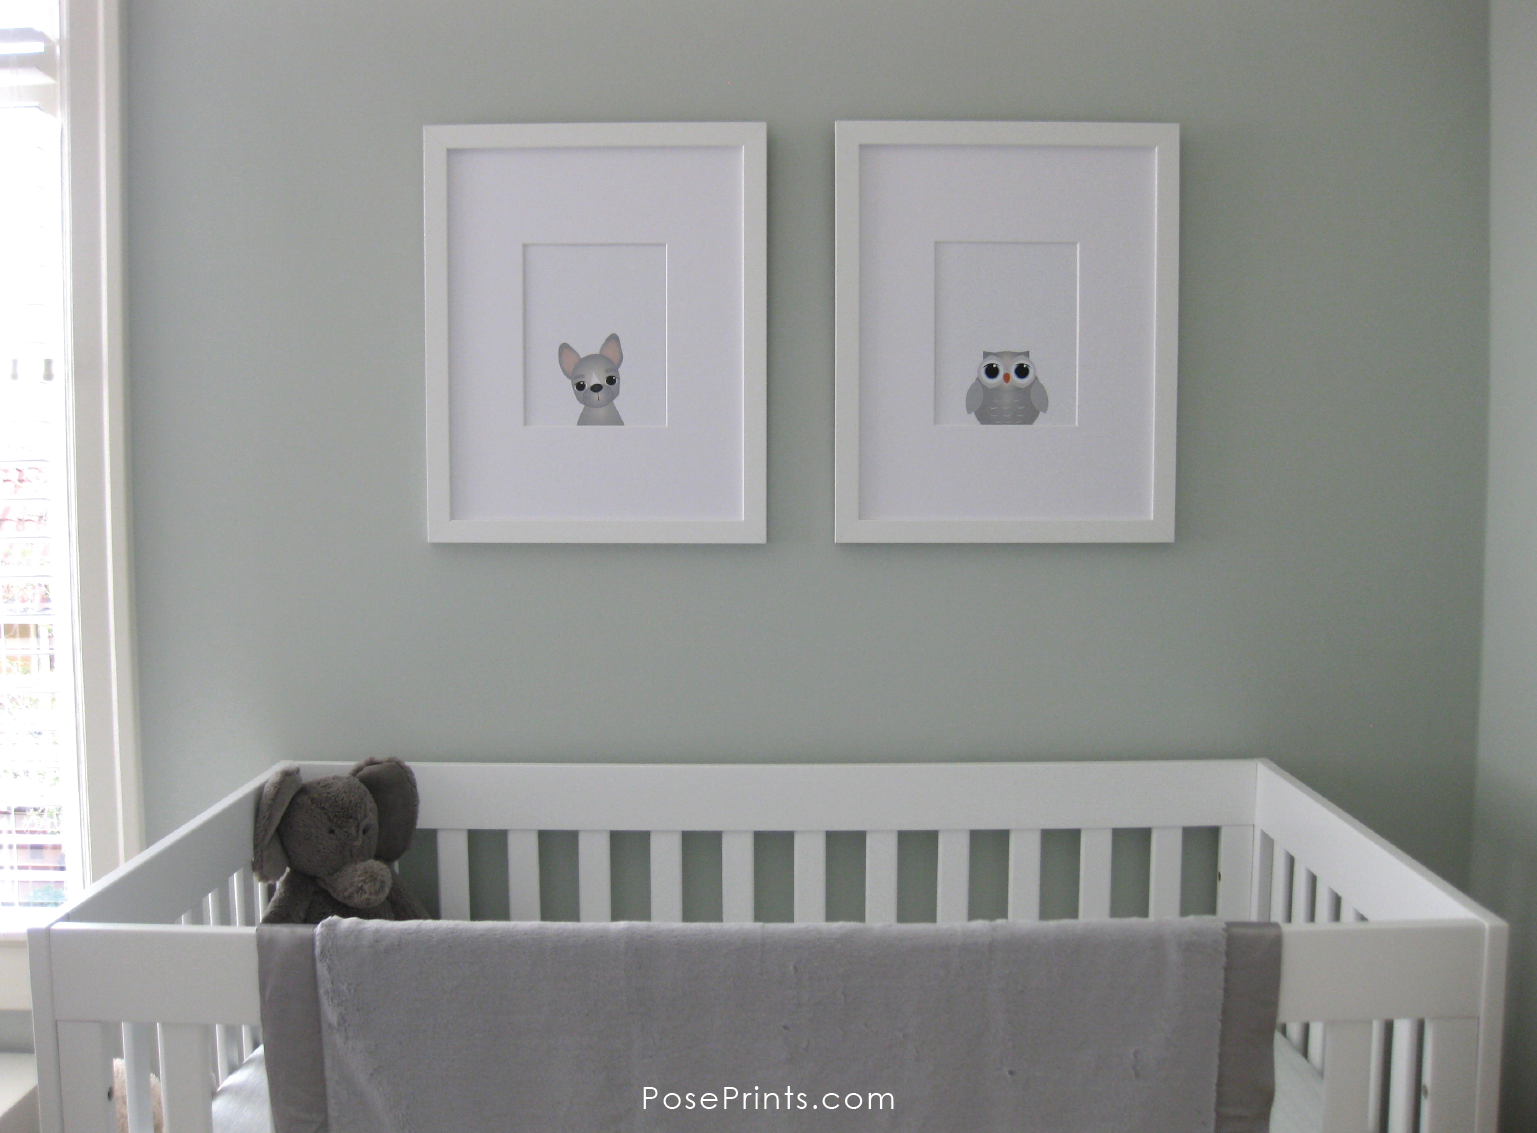 PosePrints Nursery Wall Art: French Bulldog and Owl in white frames.